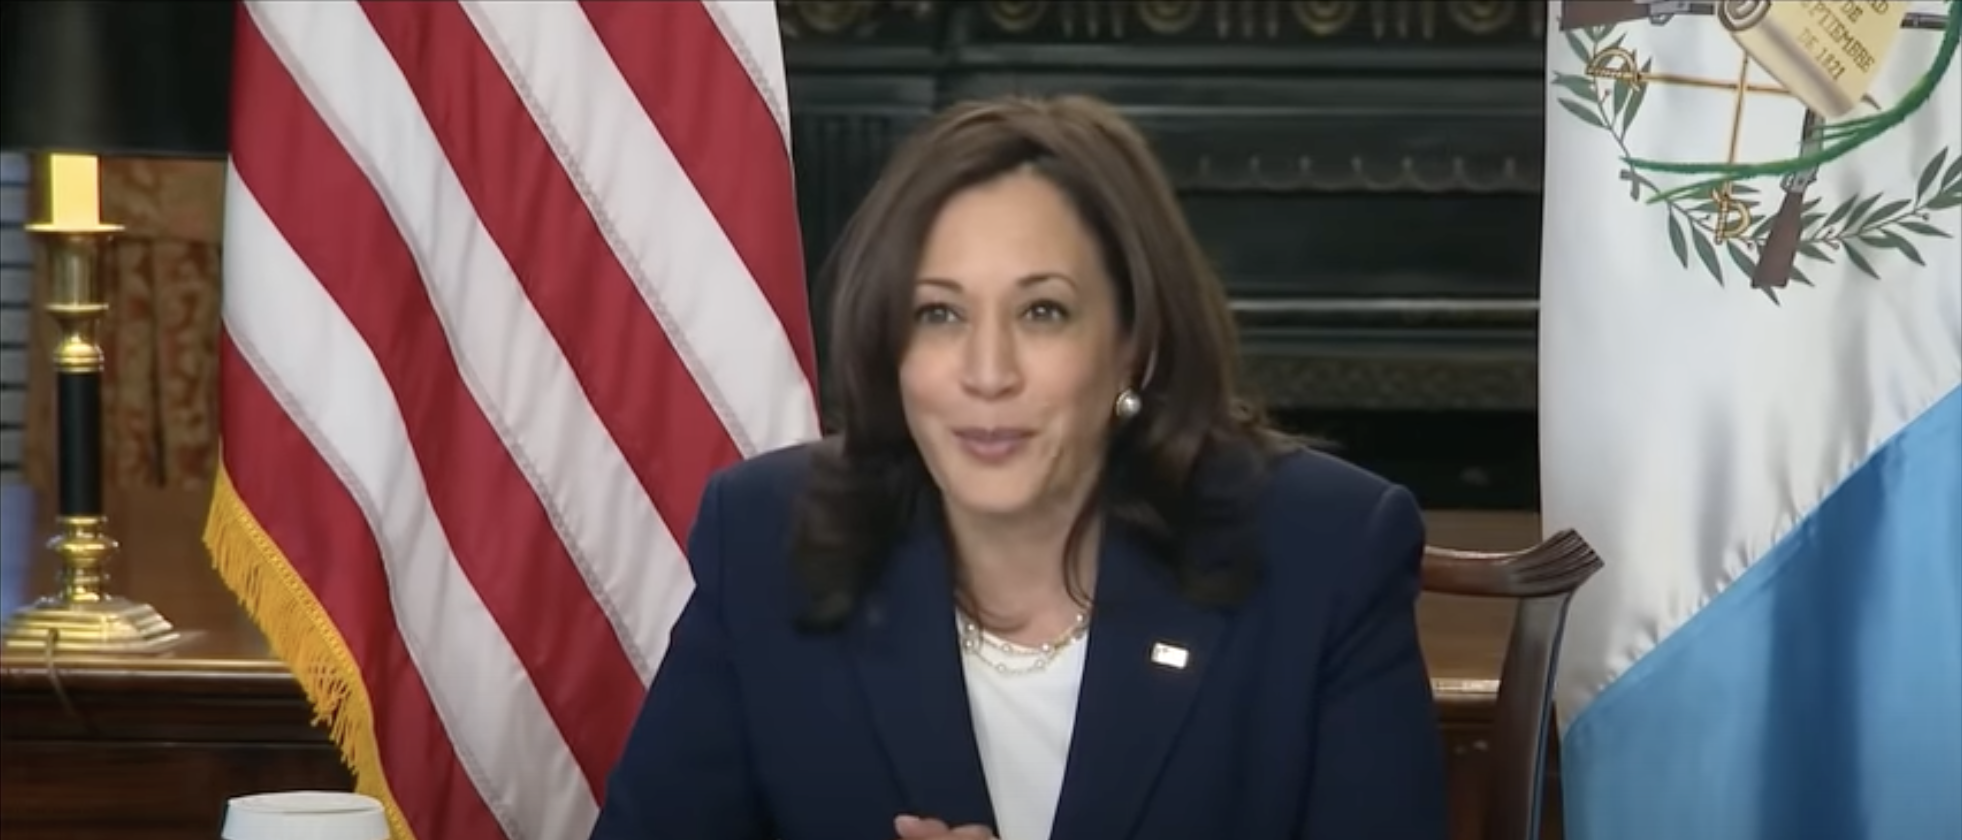 Vice President Kamala Harris in virtual meeting with president of Guatemala, April 27, 2021 (YouTube screenshot) spectator.org